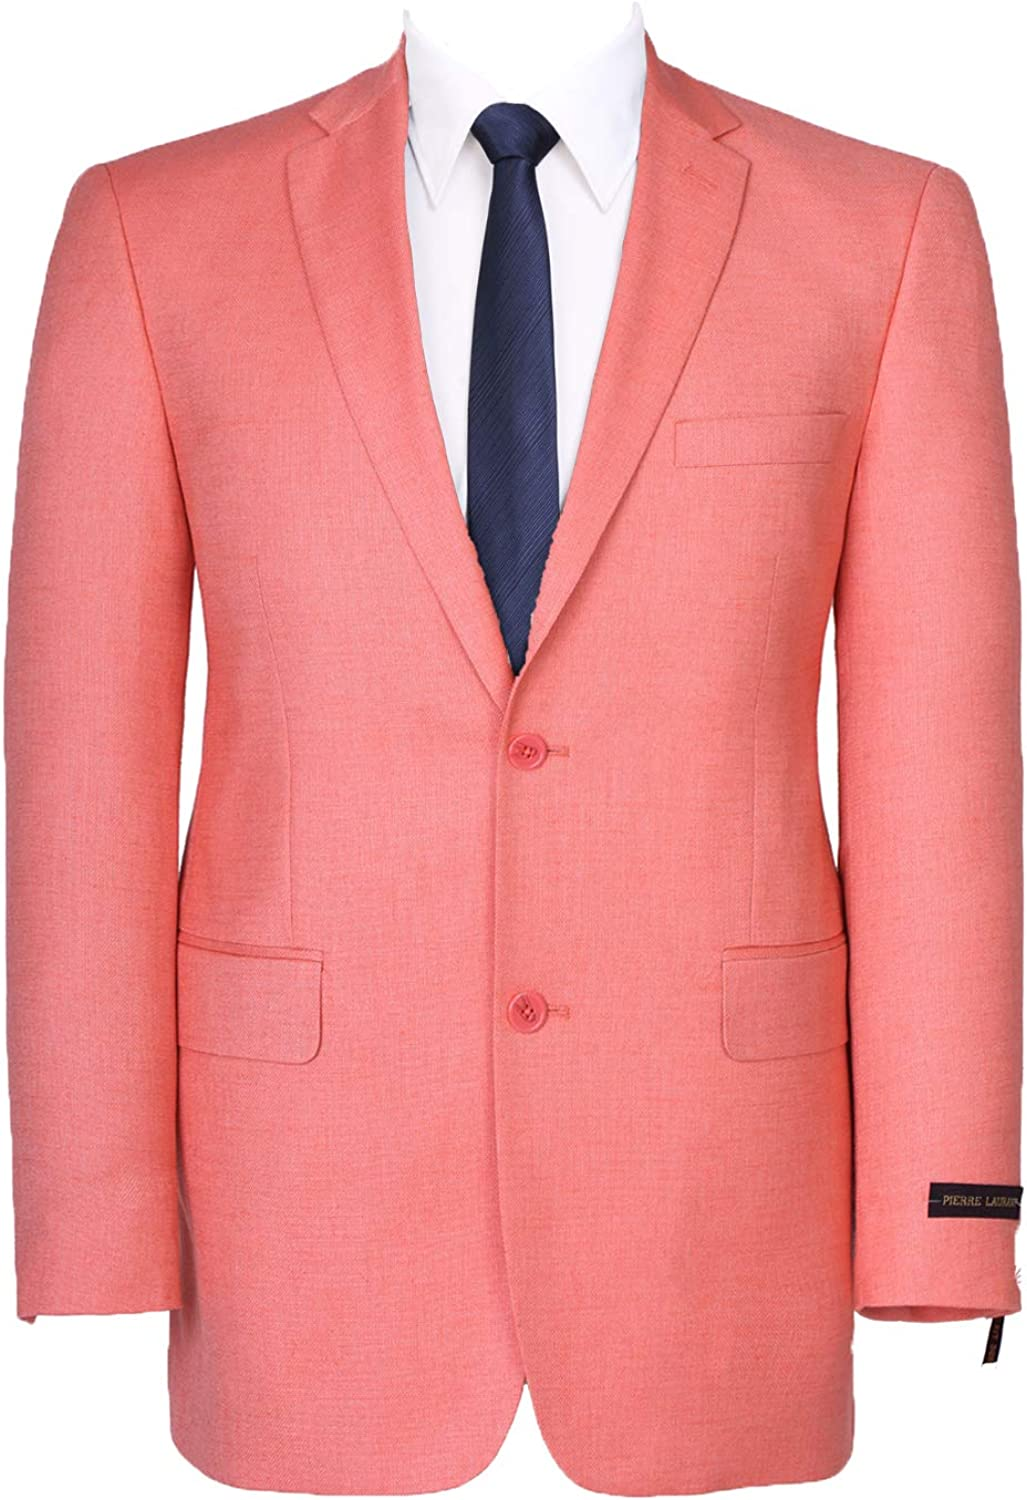 Men's Sport Indianapolis Mall Coat Classic Fit 2 Button Blazer Suit Jacket Ranking TOP4 Stretch